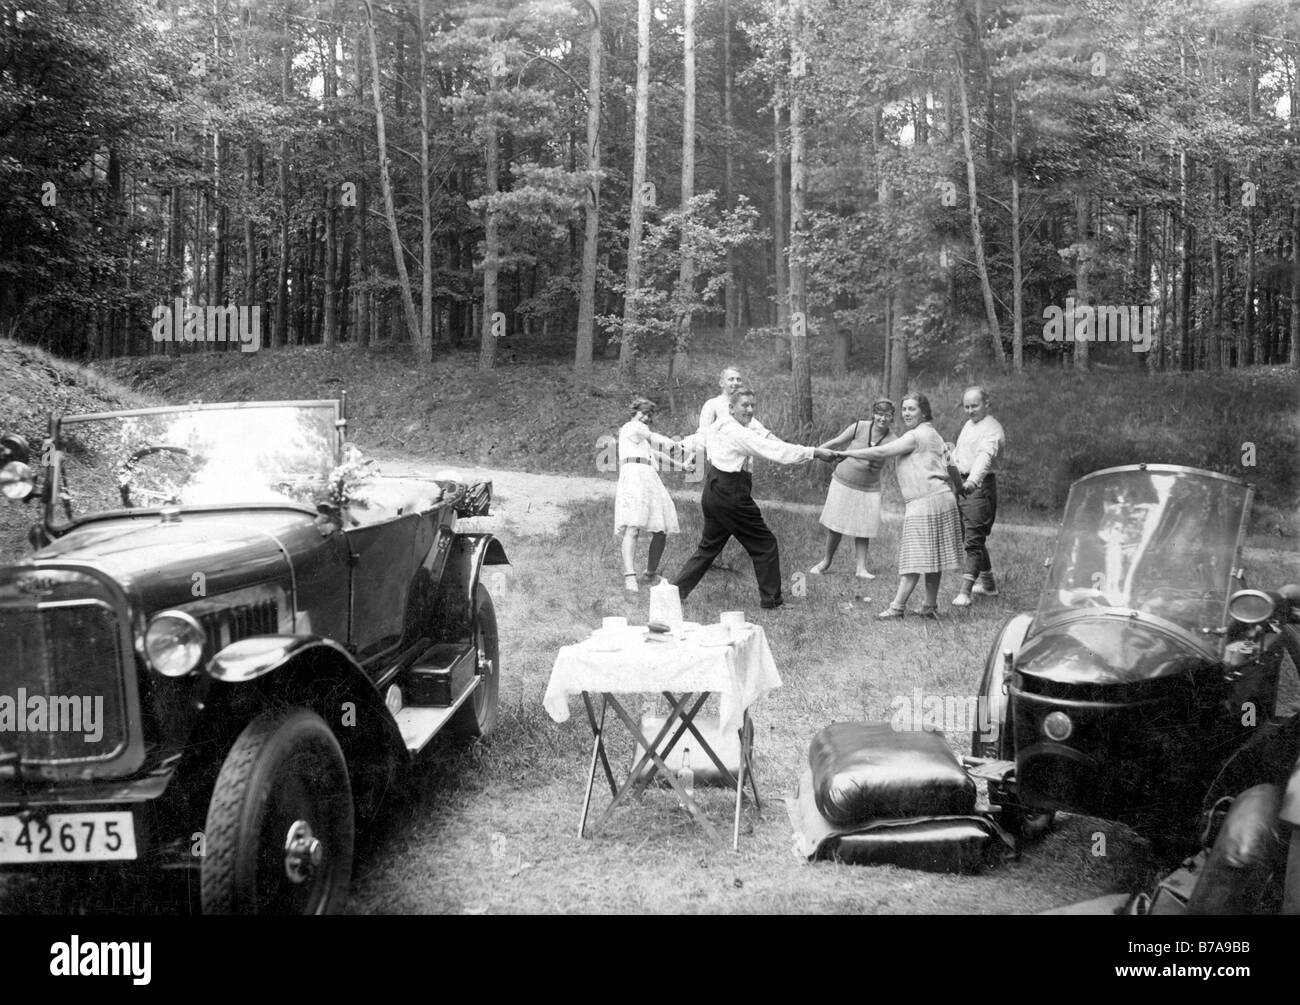 Historic photo, picknick with dance, ca. 1930 - Stock Image